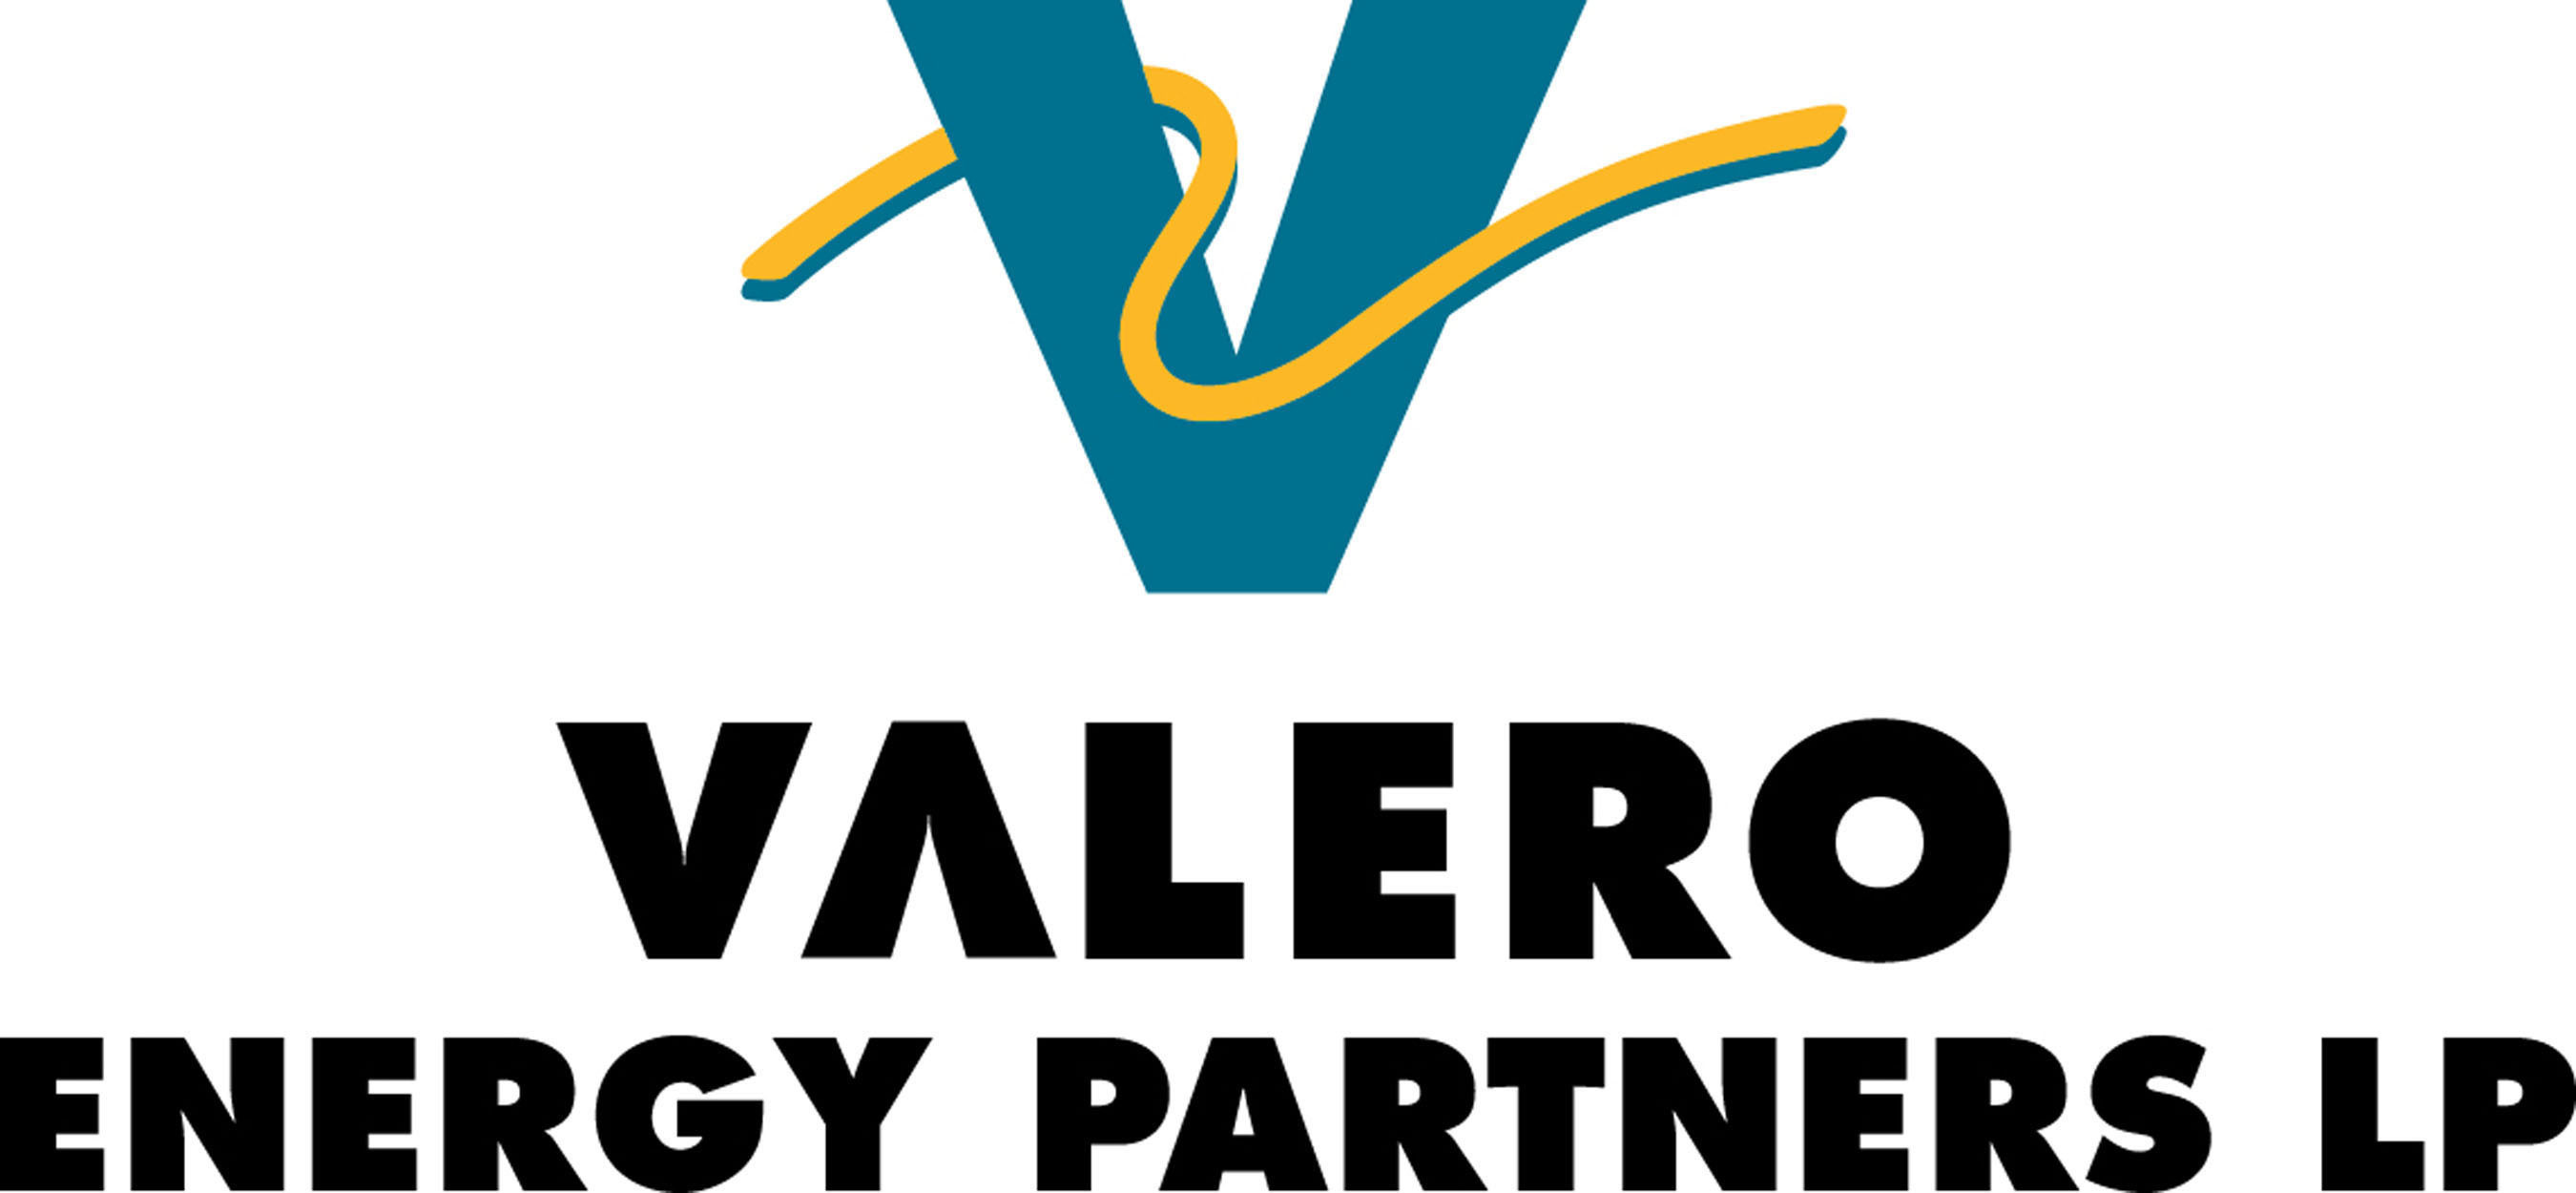 Valero Energy Partners to Announce Fourth Quarter 2015 Earnings Results on February 4, 2016